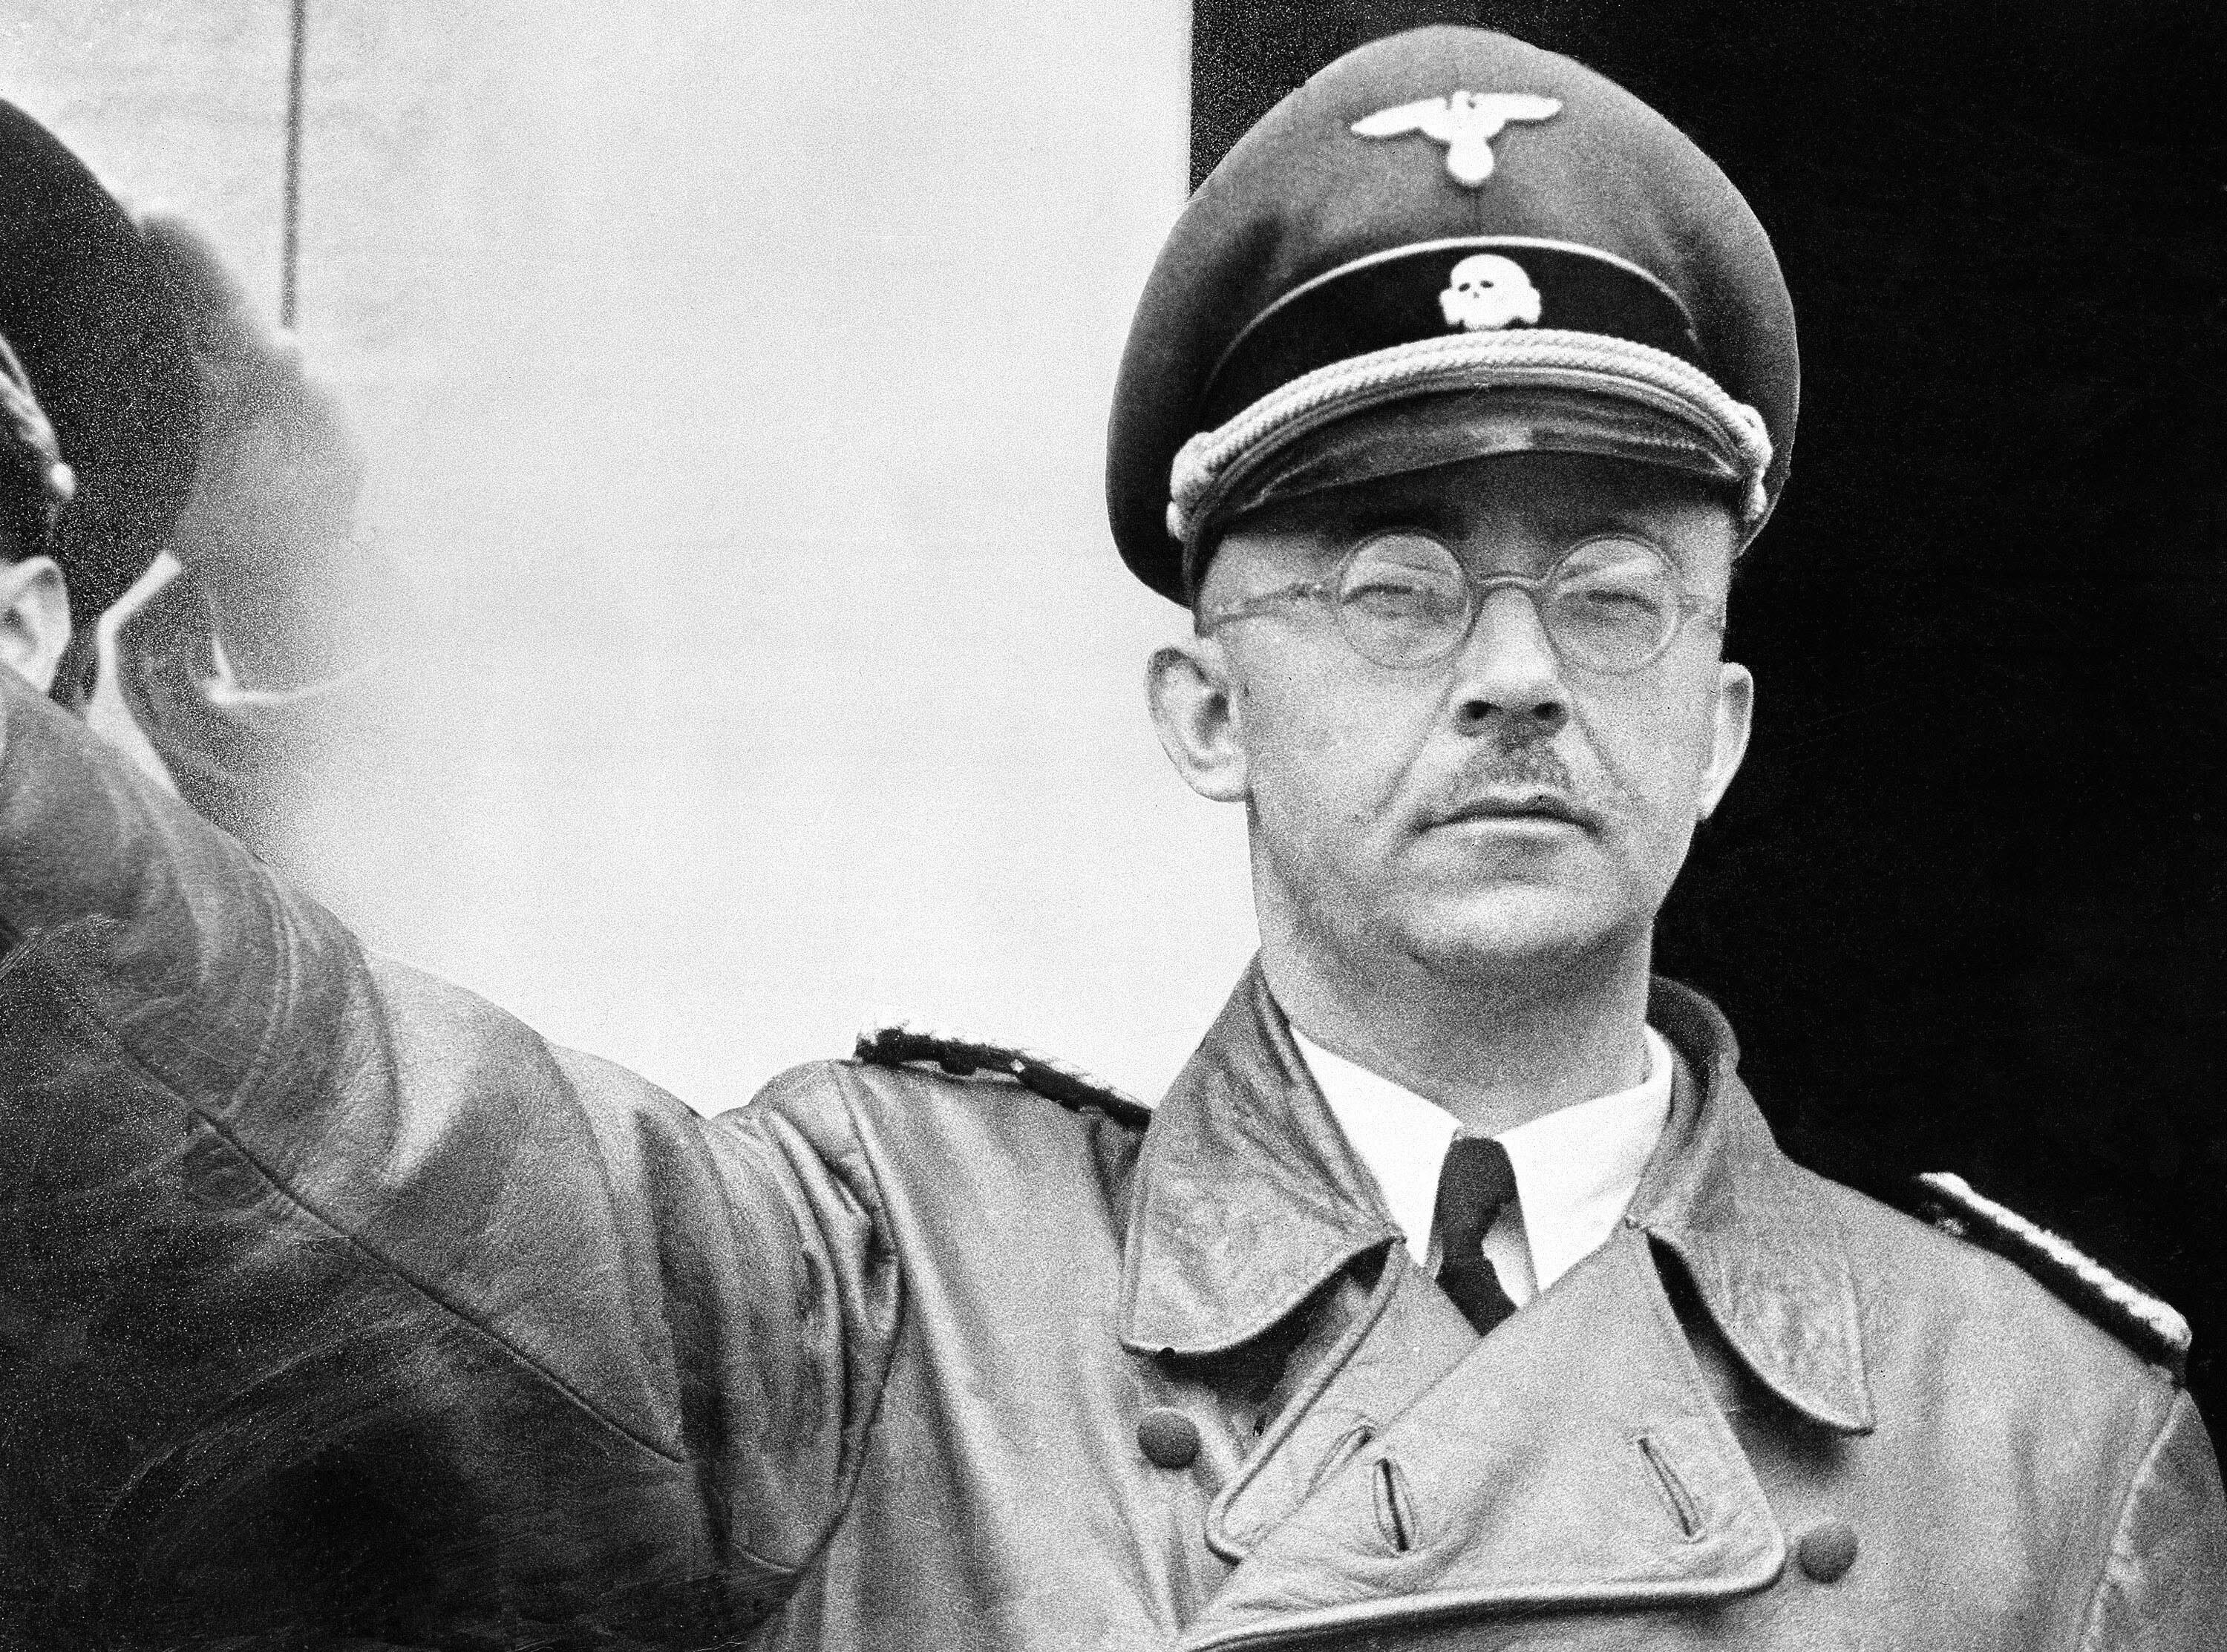 Heinrich Himmler, a leading member of Germany's Nazi party